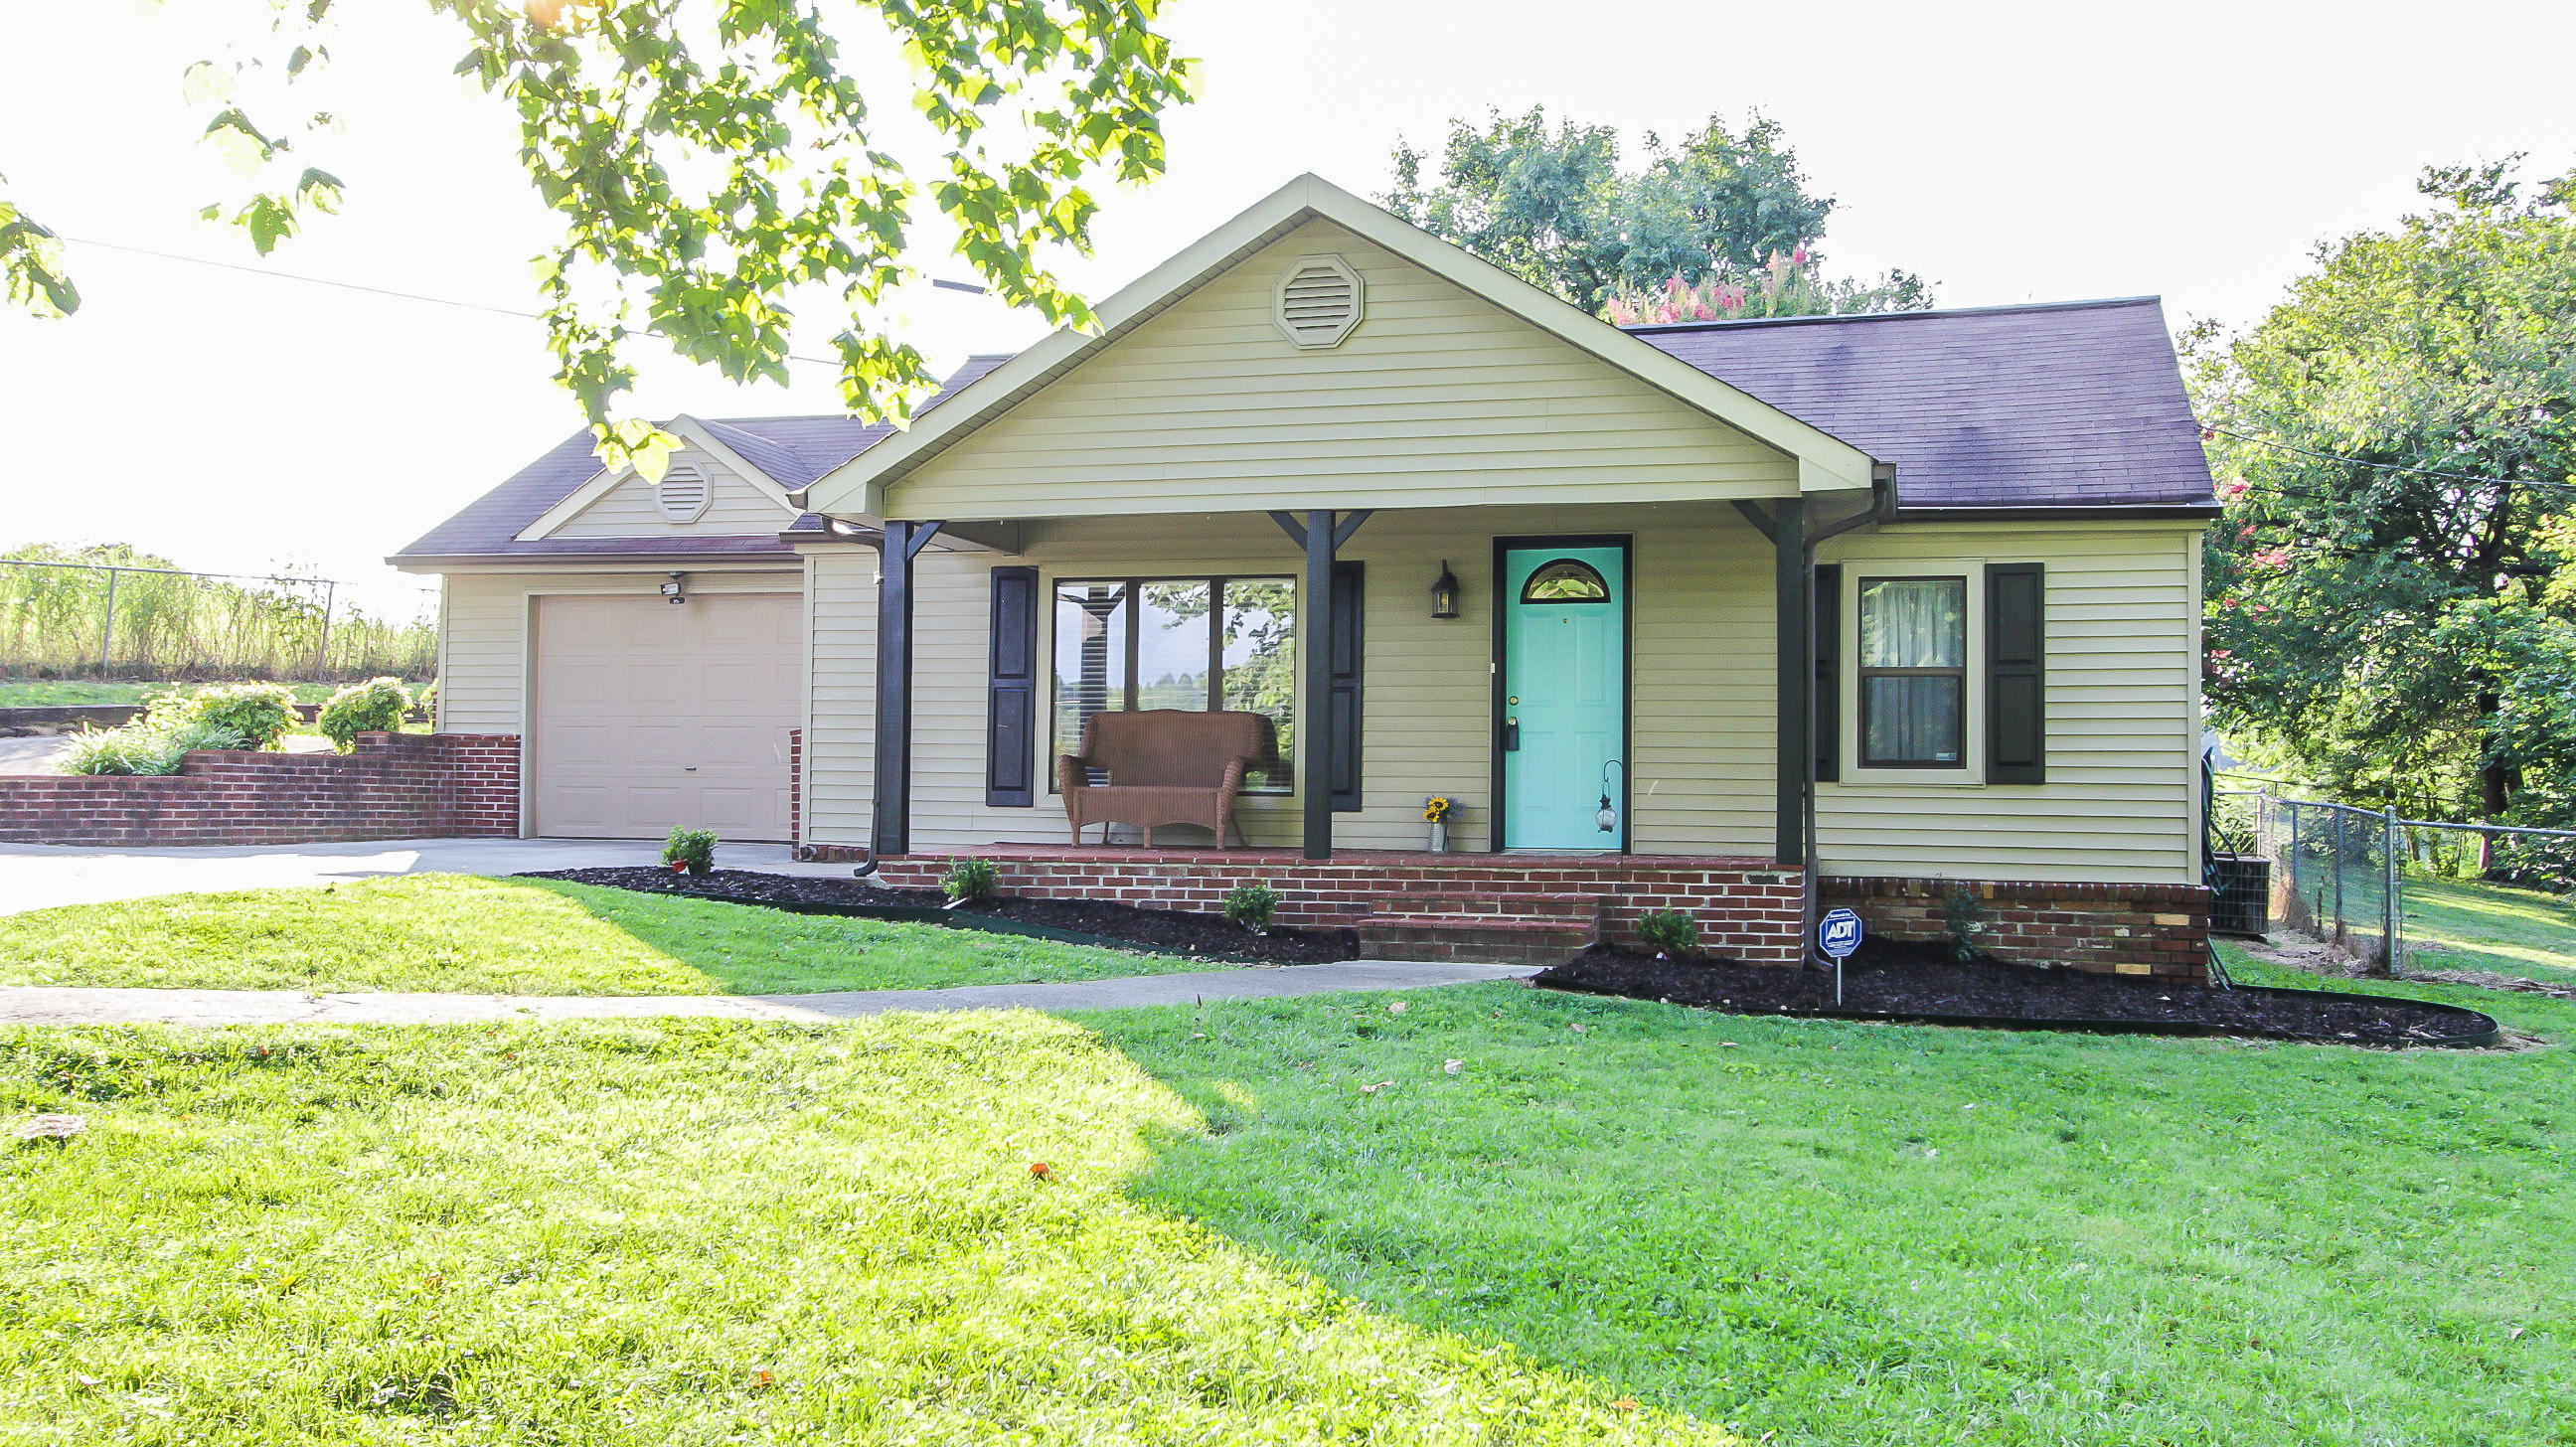 20190725054357397617000000-o Clinton anderson county homes for sale